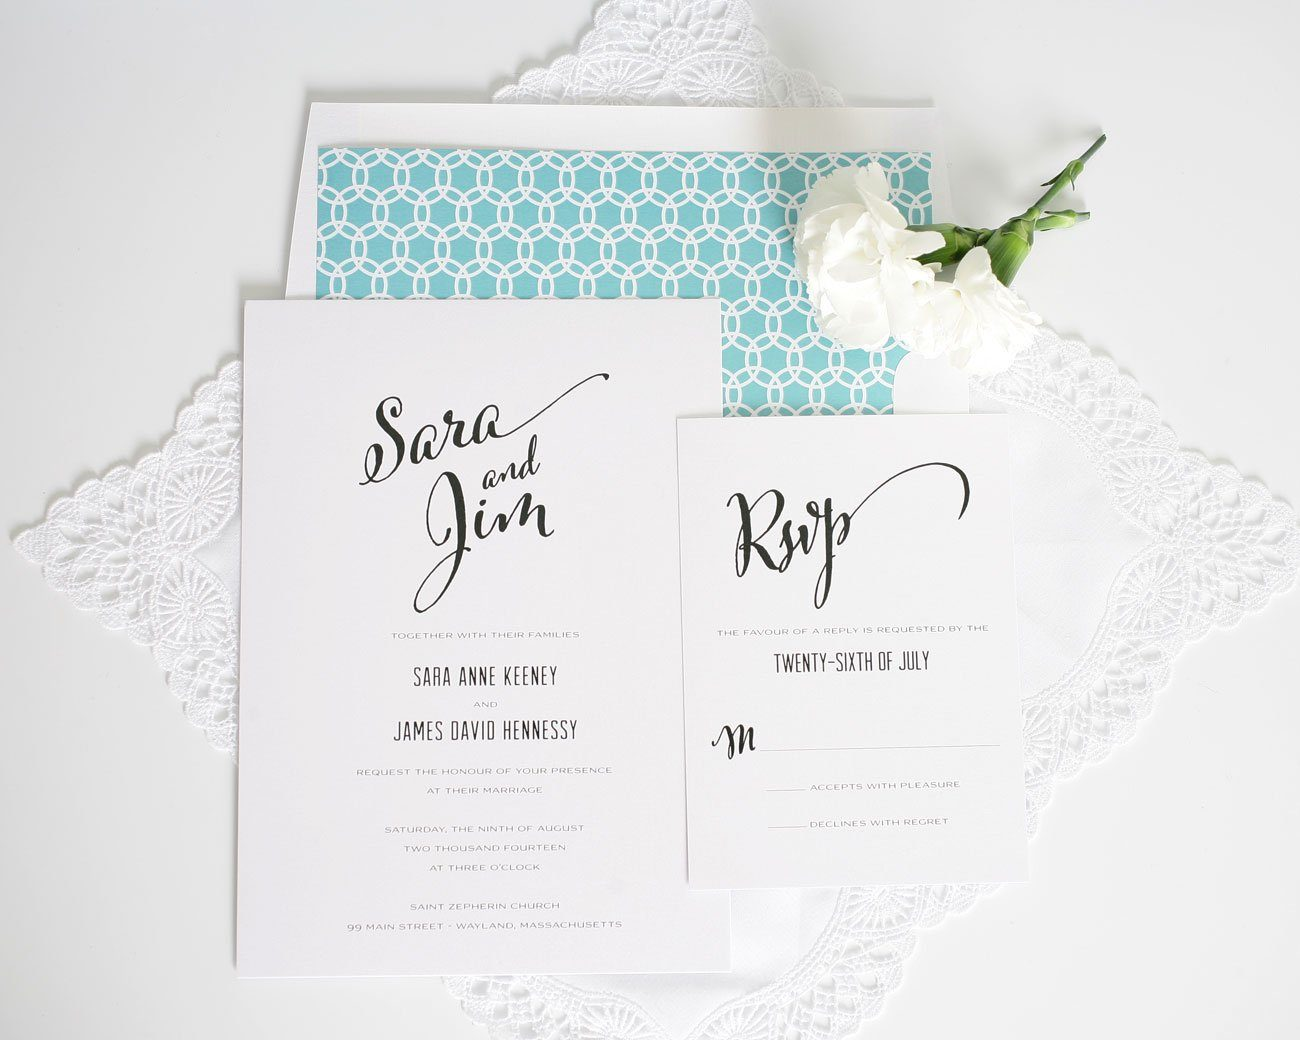 Gorgeous wedding invitations with large script and aqua accents